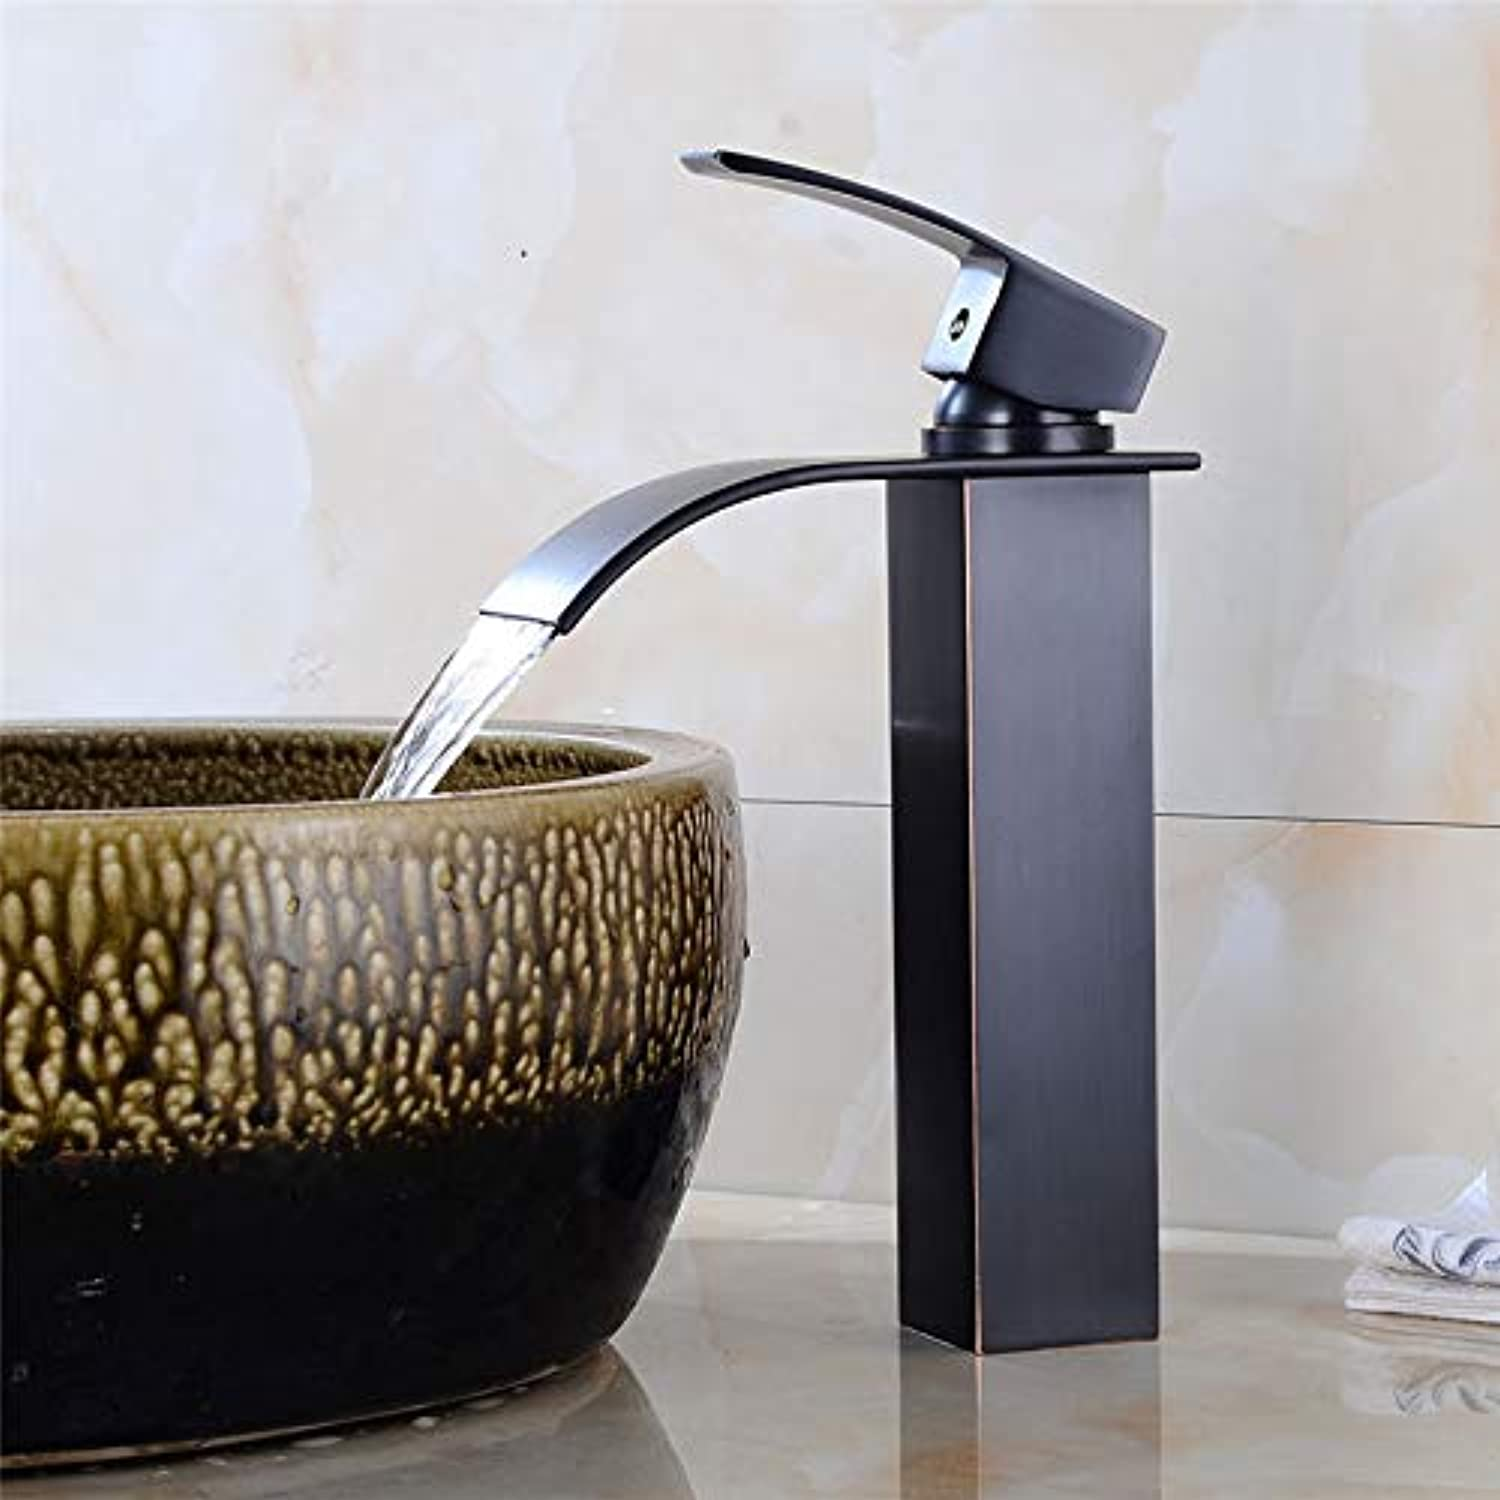 Decorry Waterfall Faucet Antique Bronze Bathroom Basin Faucet Brass Faucet Hot and Cold Bathroom Sink Mixer Taps Lavatory Mixer,Black Oil Tall